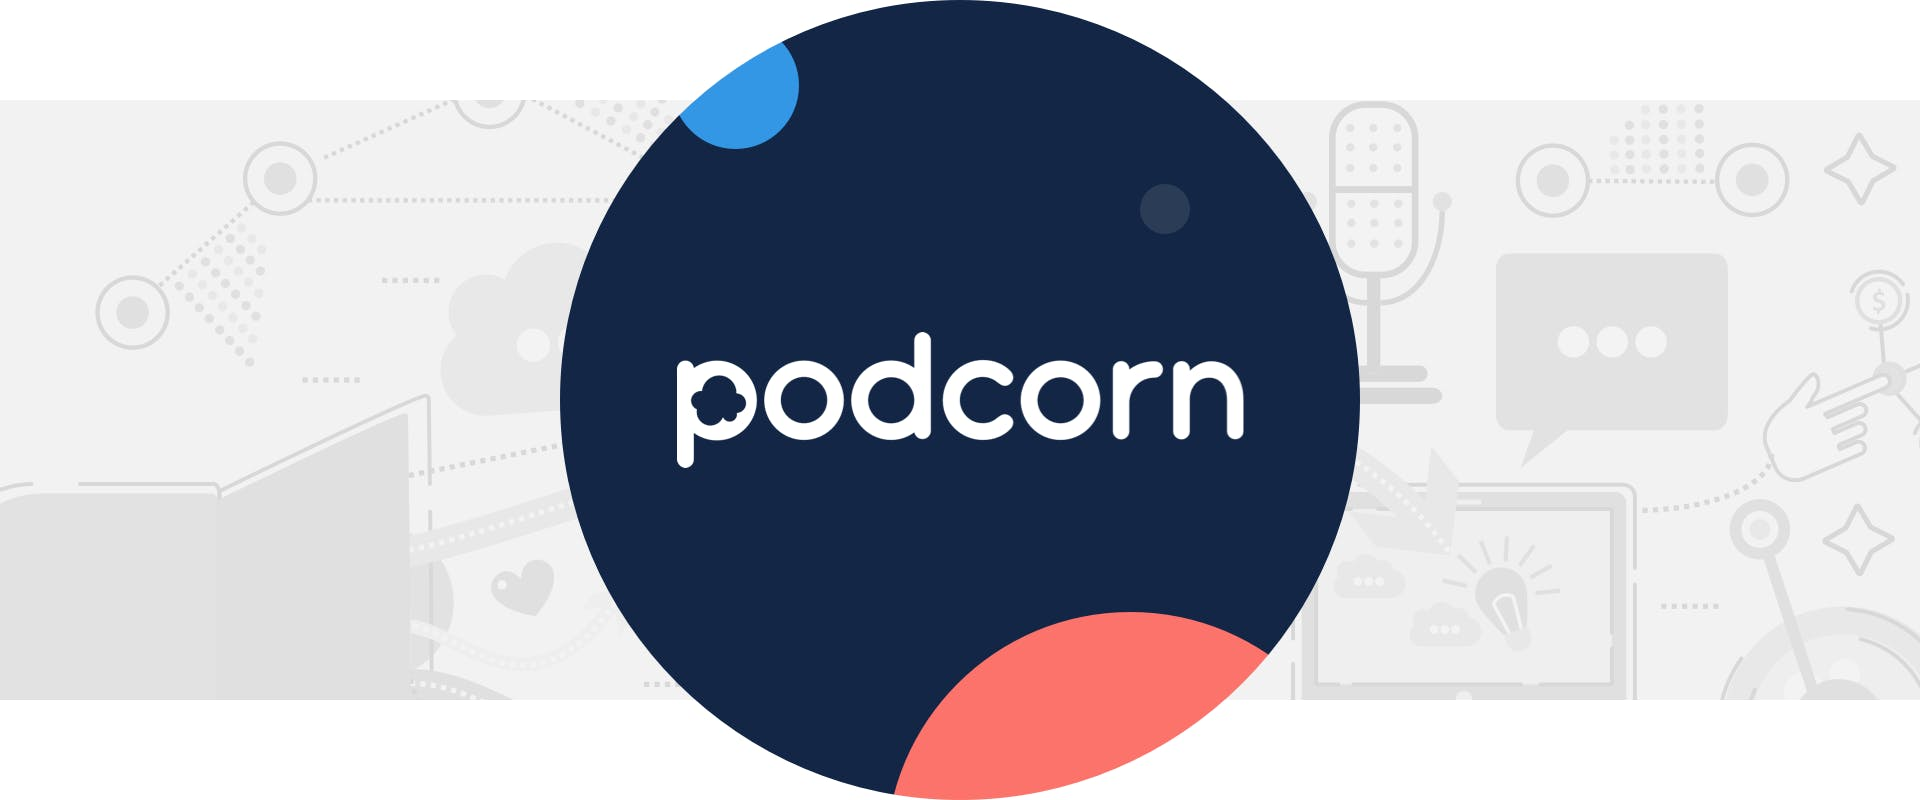 Podcorn Review